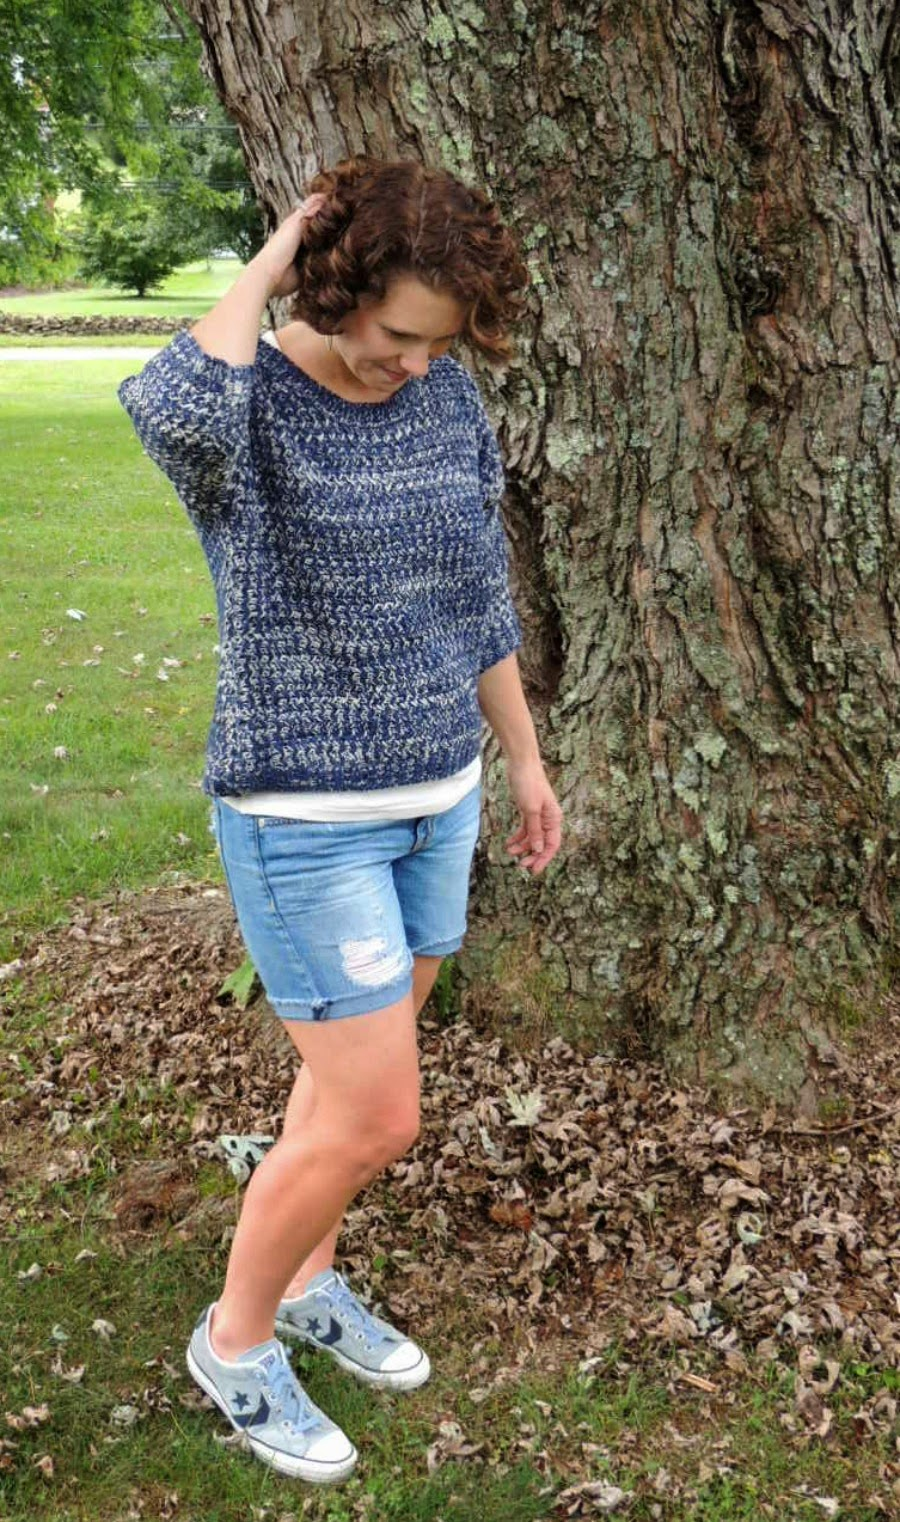 Budget Friendly, NYC Chic Fall Fashion from Necessary Clothing via thefrugalfoodiemama.com - Sebastian Pull Over Sweater